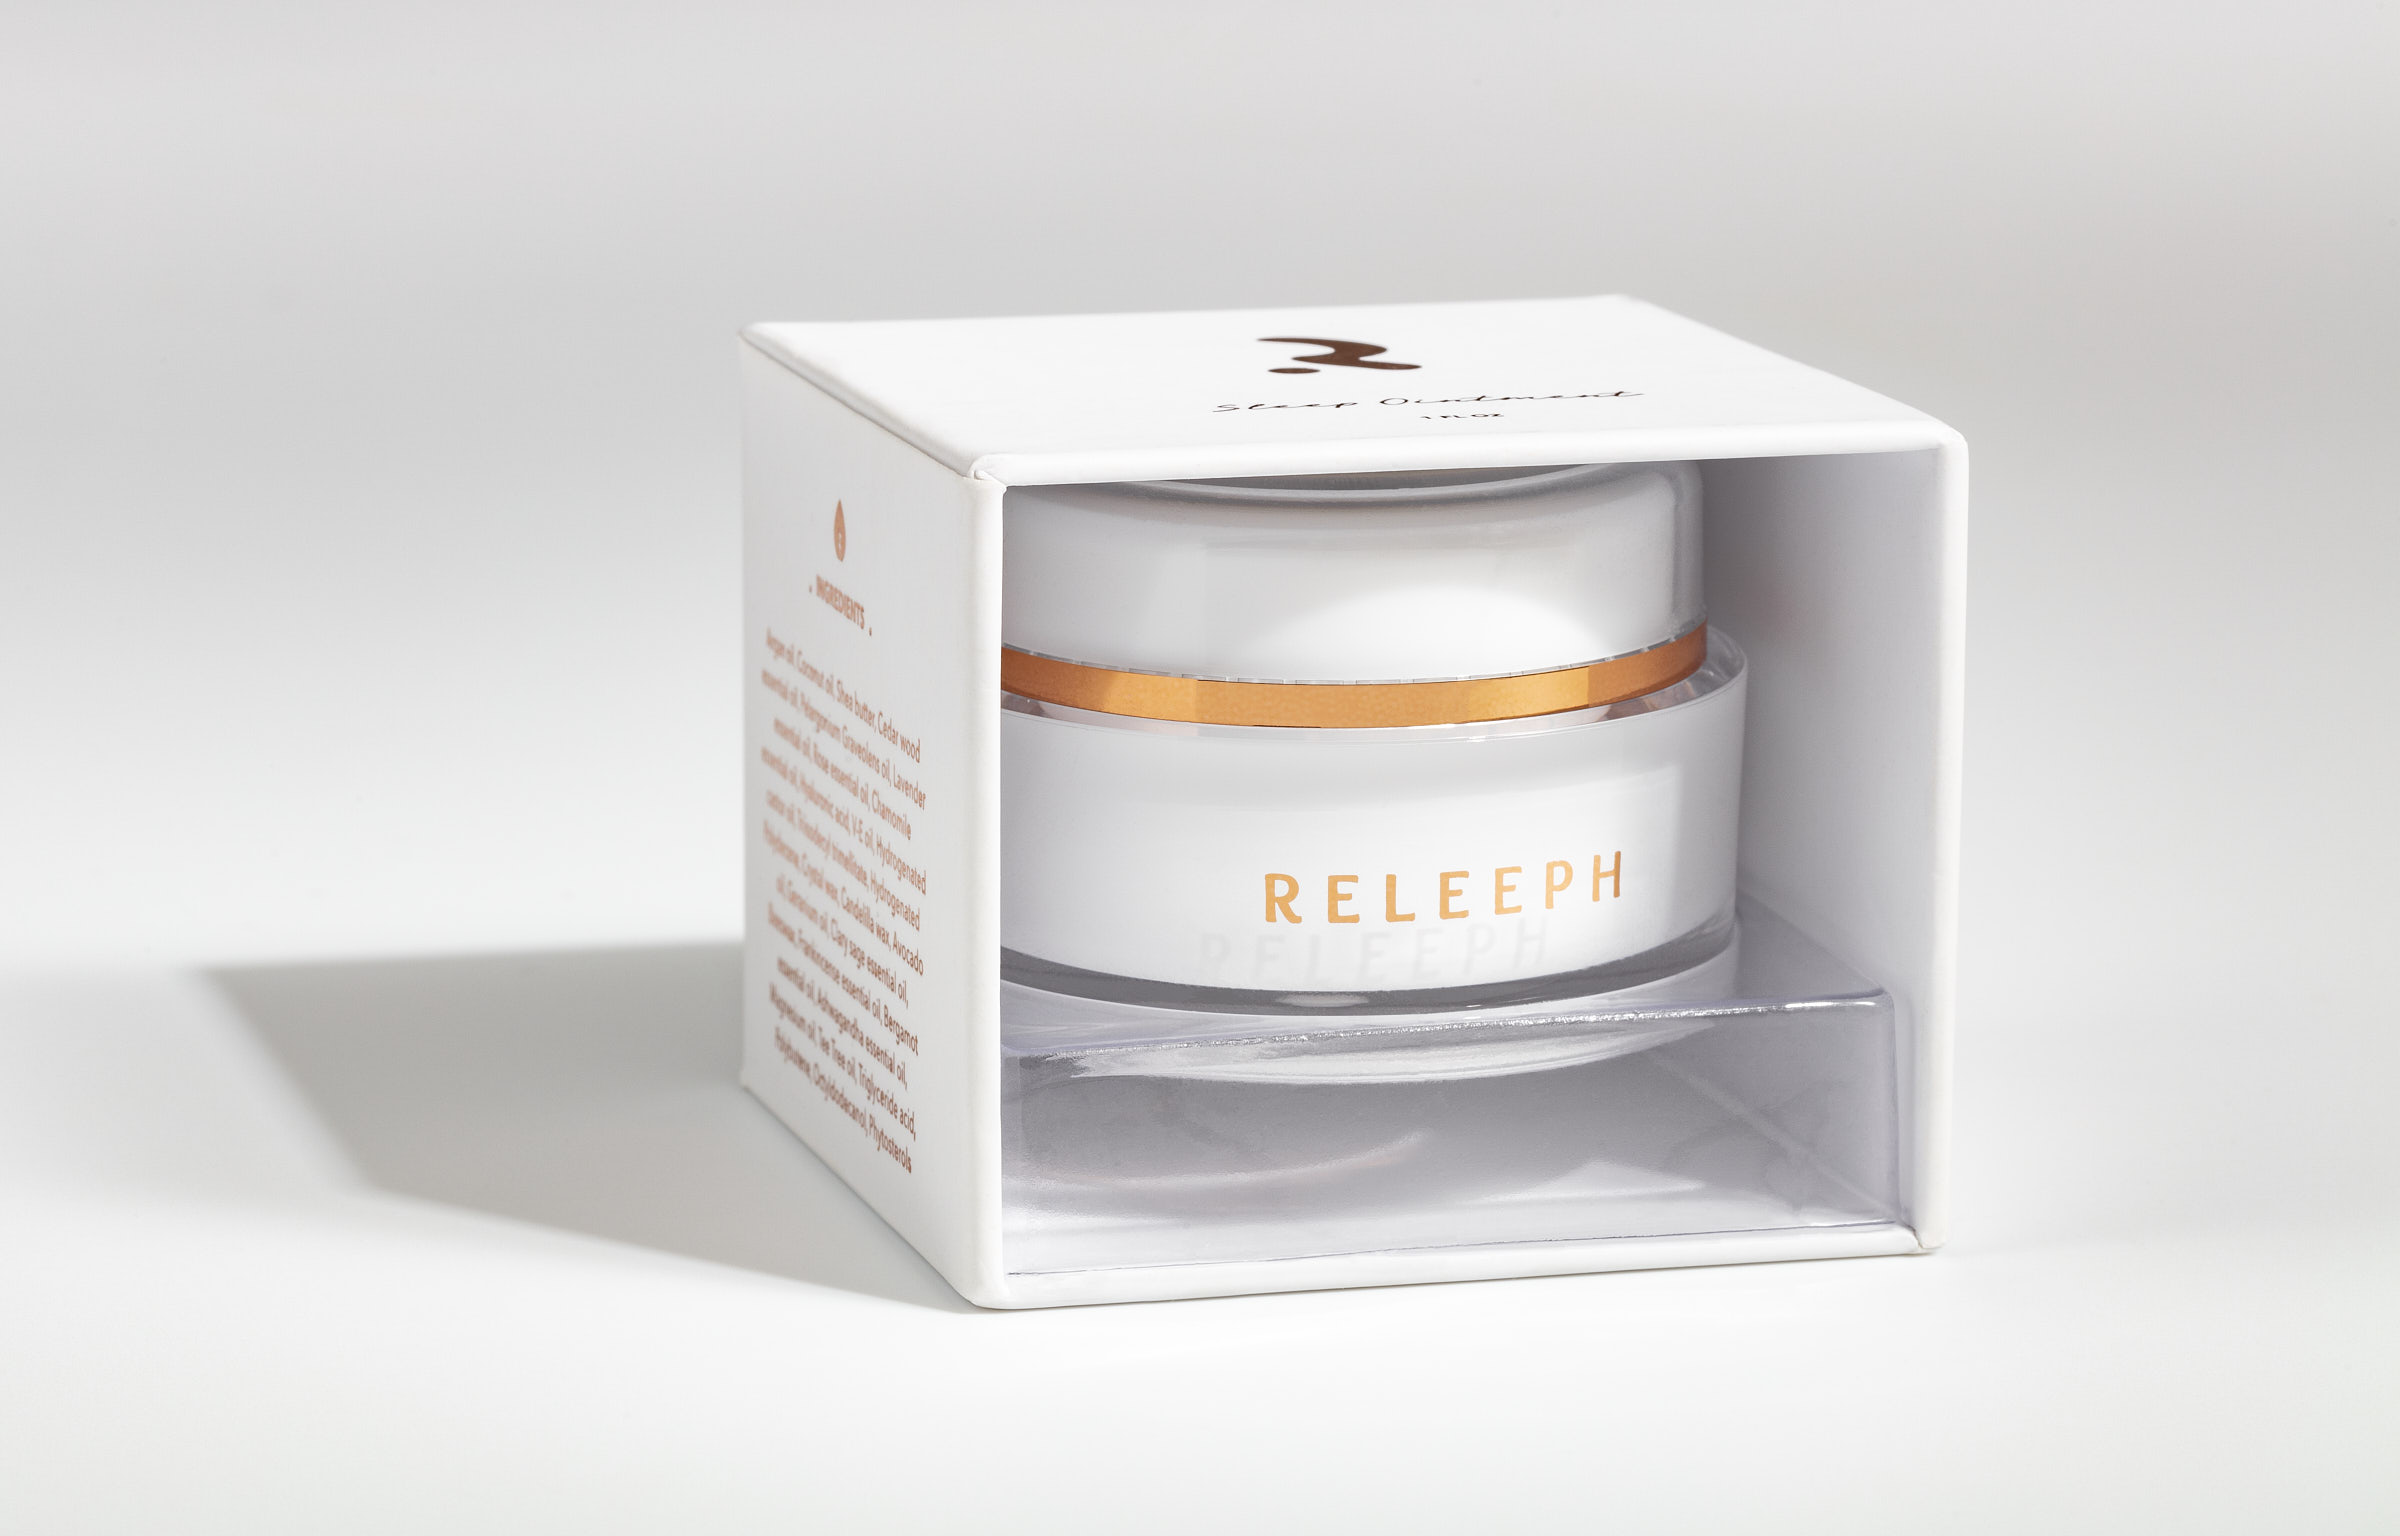 Relleph Cream Solo inside box no plastic cover_Advertising product photography